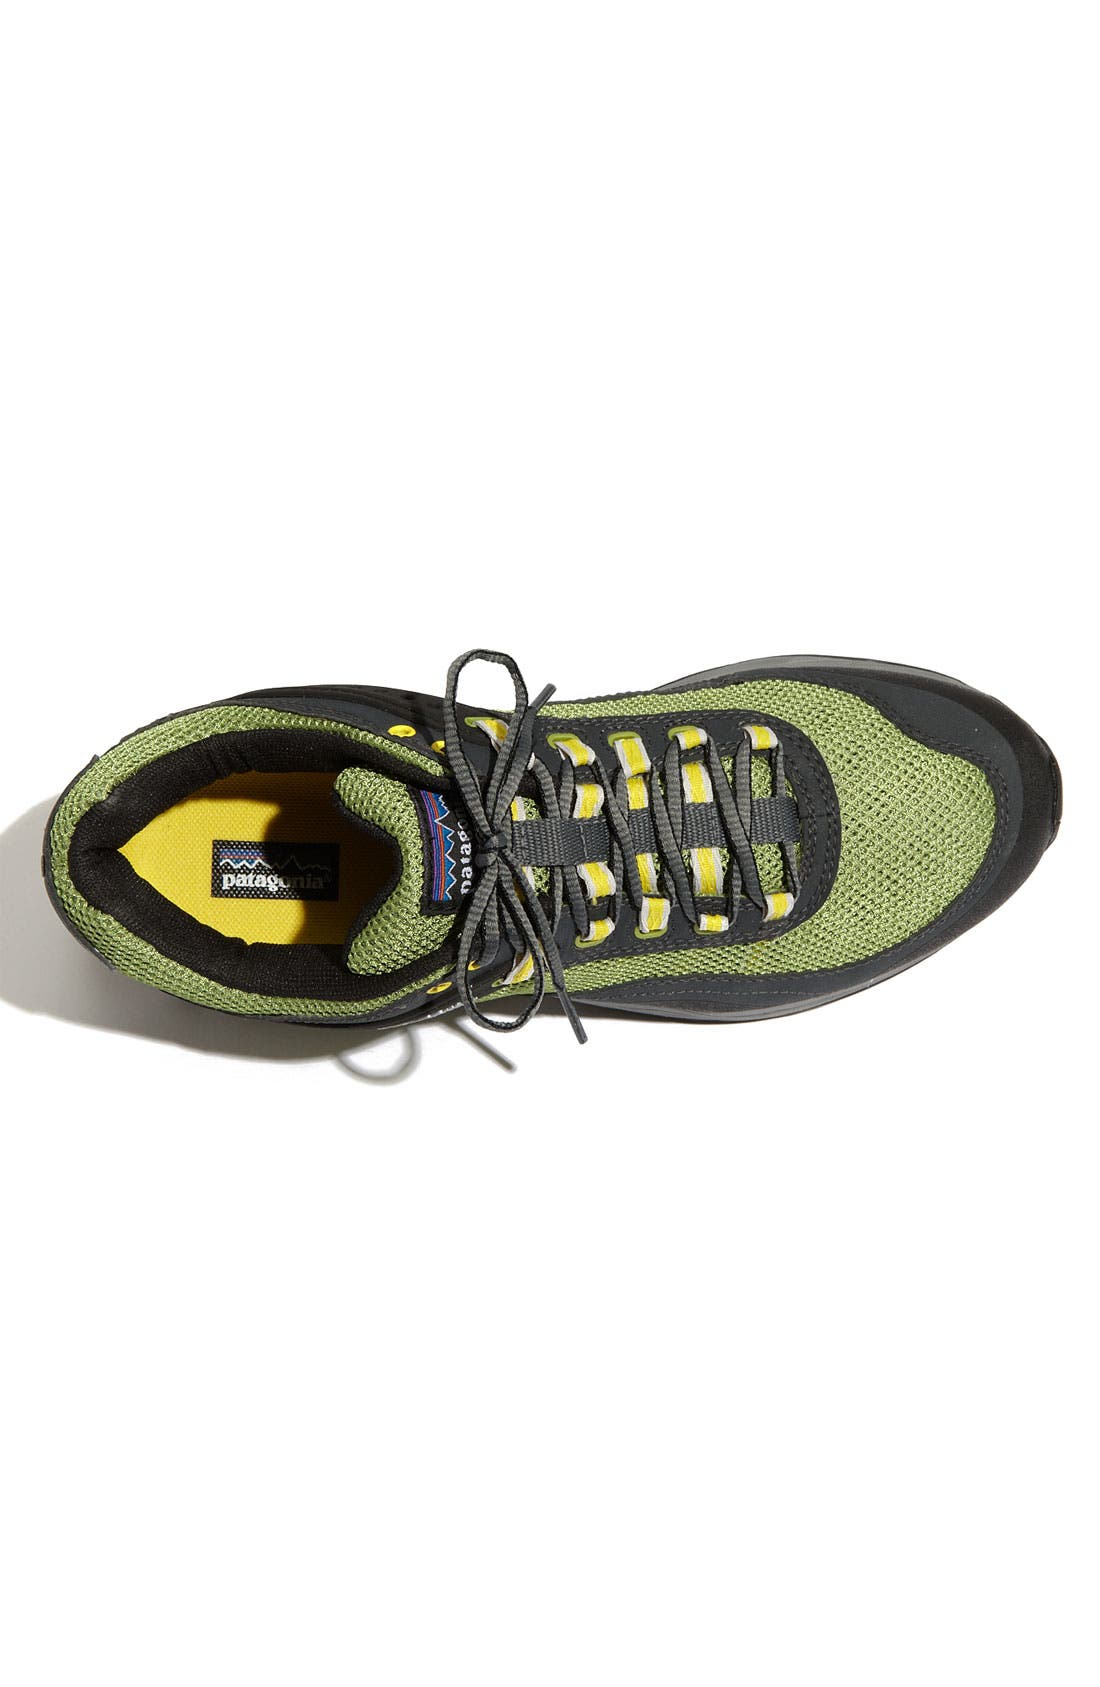 Alternate Image 2  - Patagonia 'Specter' Trail Running Shoe (Men)